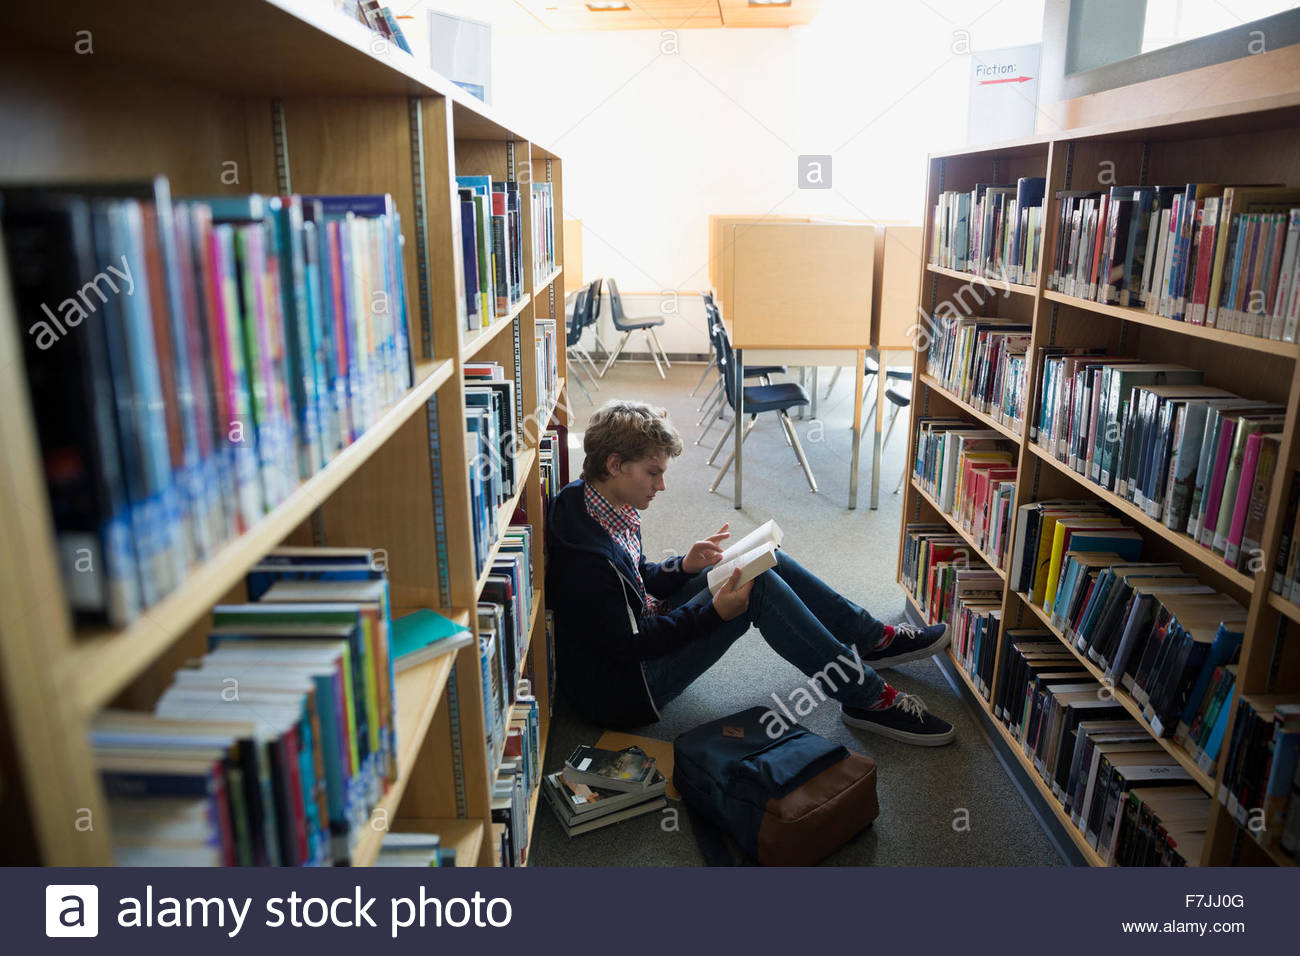 High school student reading book on library floor - Stock Image